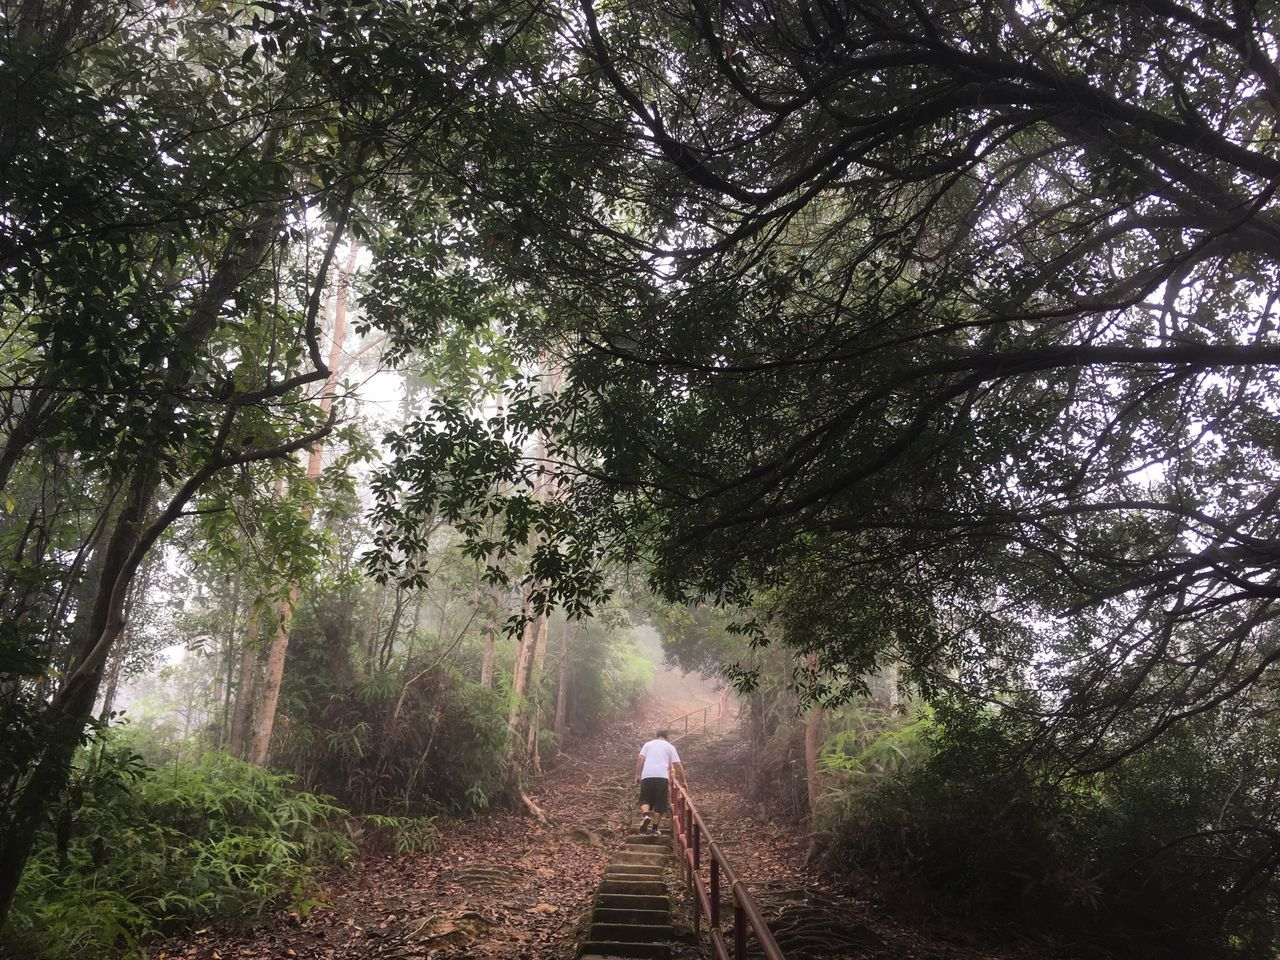 Tree Nature Forest Lifestyles One Person Walking The Way Forward Outdoors Misty Morning Sungai Lembing Malaysia Pahang, Malaysia Hiking Full Length Beauty In Nature Real People Leisure Activity Growth Tranquility Cycling Men Day People Adults Only Adult